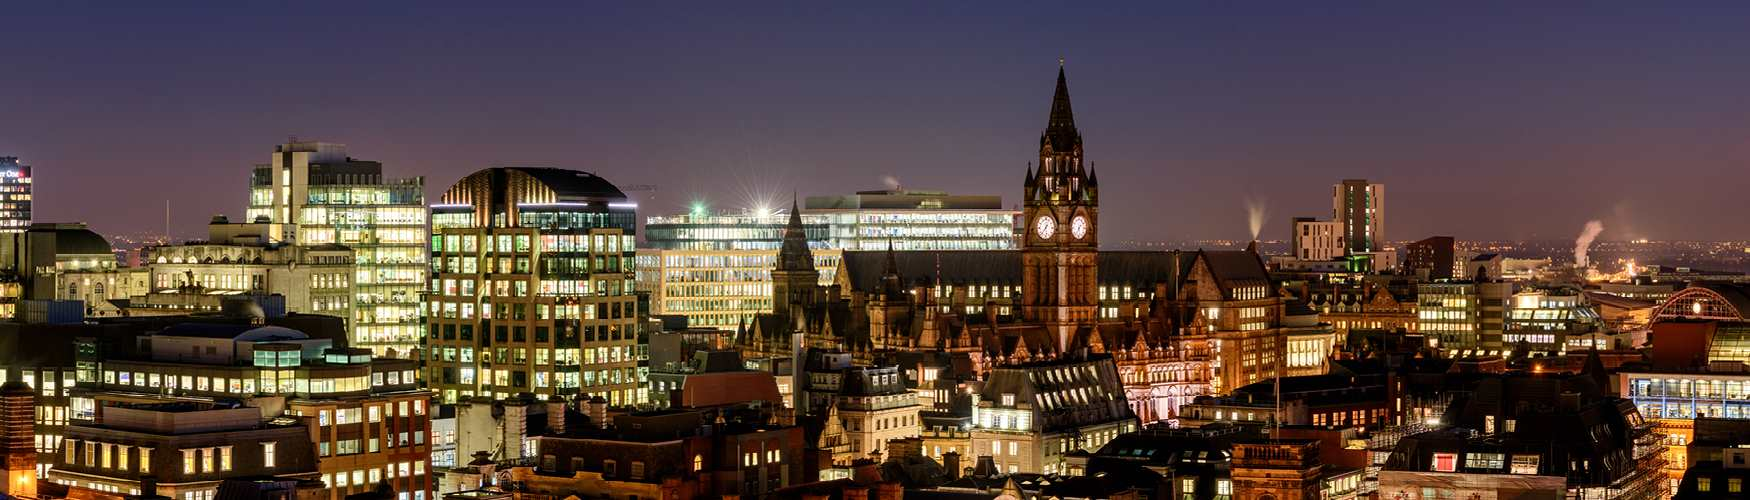 Manchester is one of the UK's fastest growing regional cities